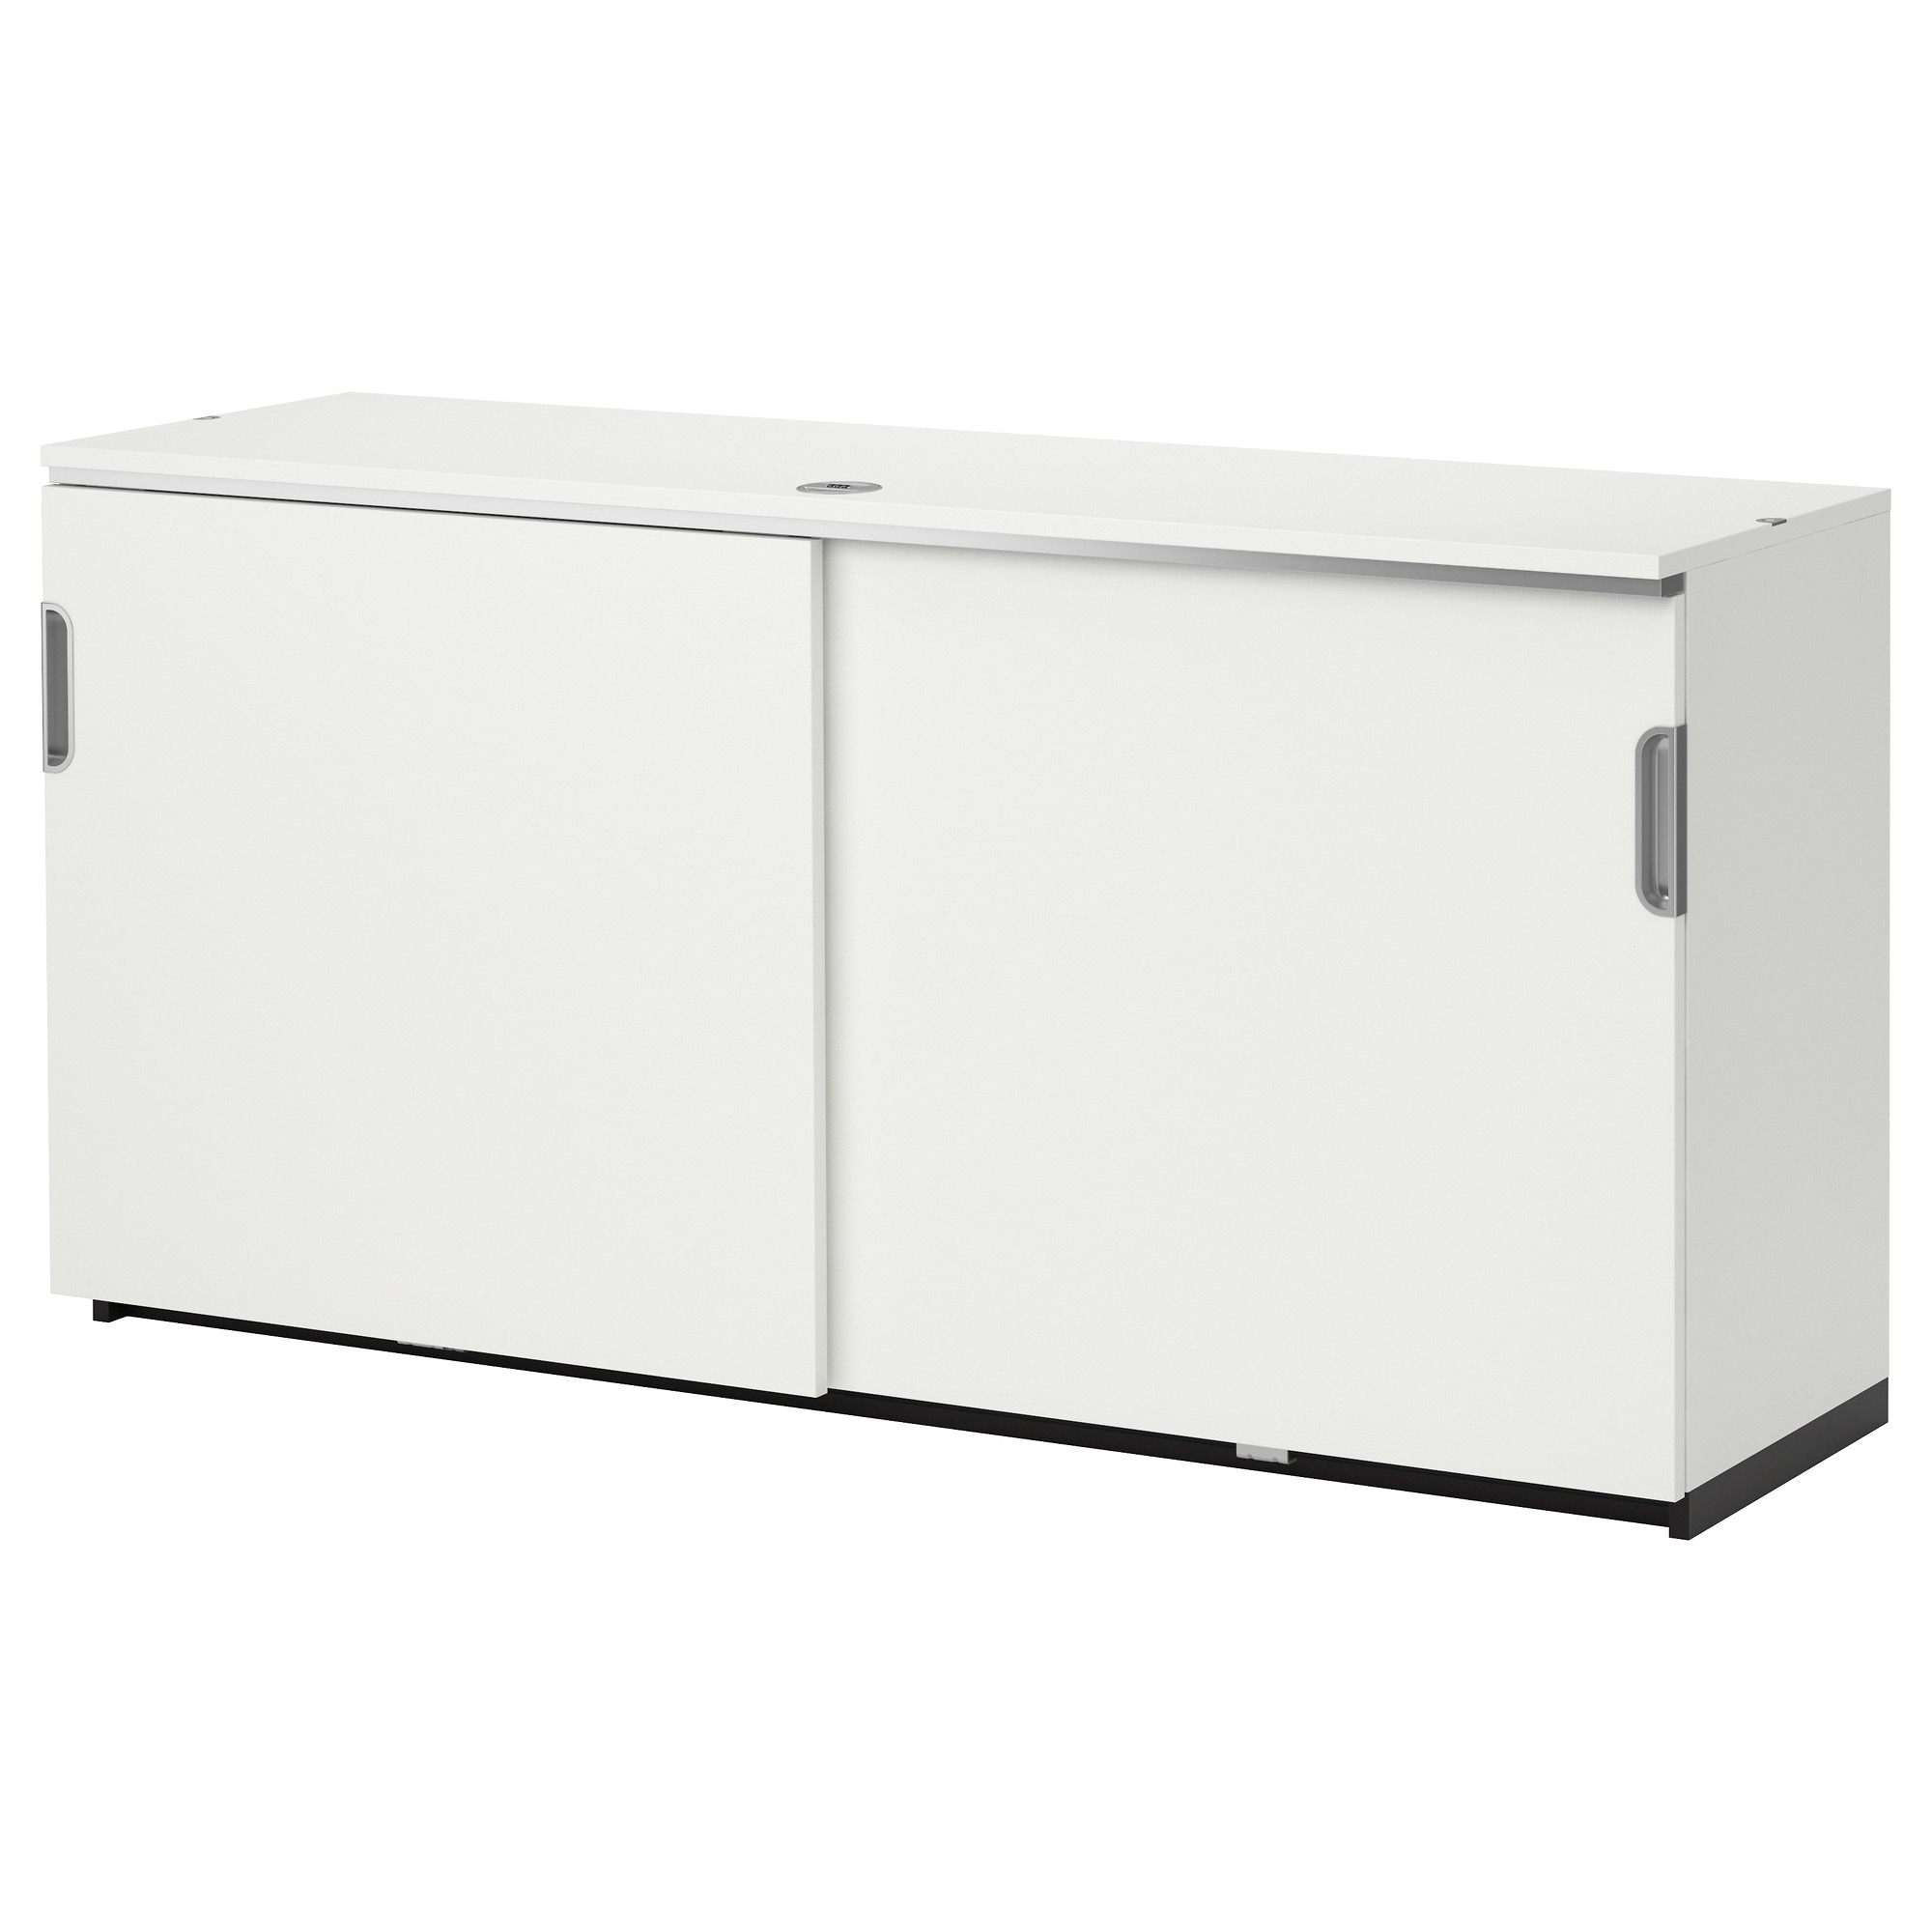 Beau GALANT Cabinet With Sliding Doors   White   IKEA